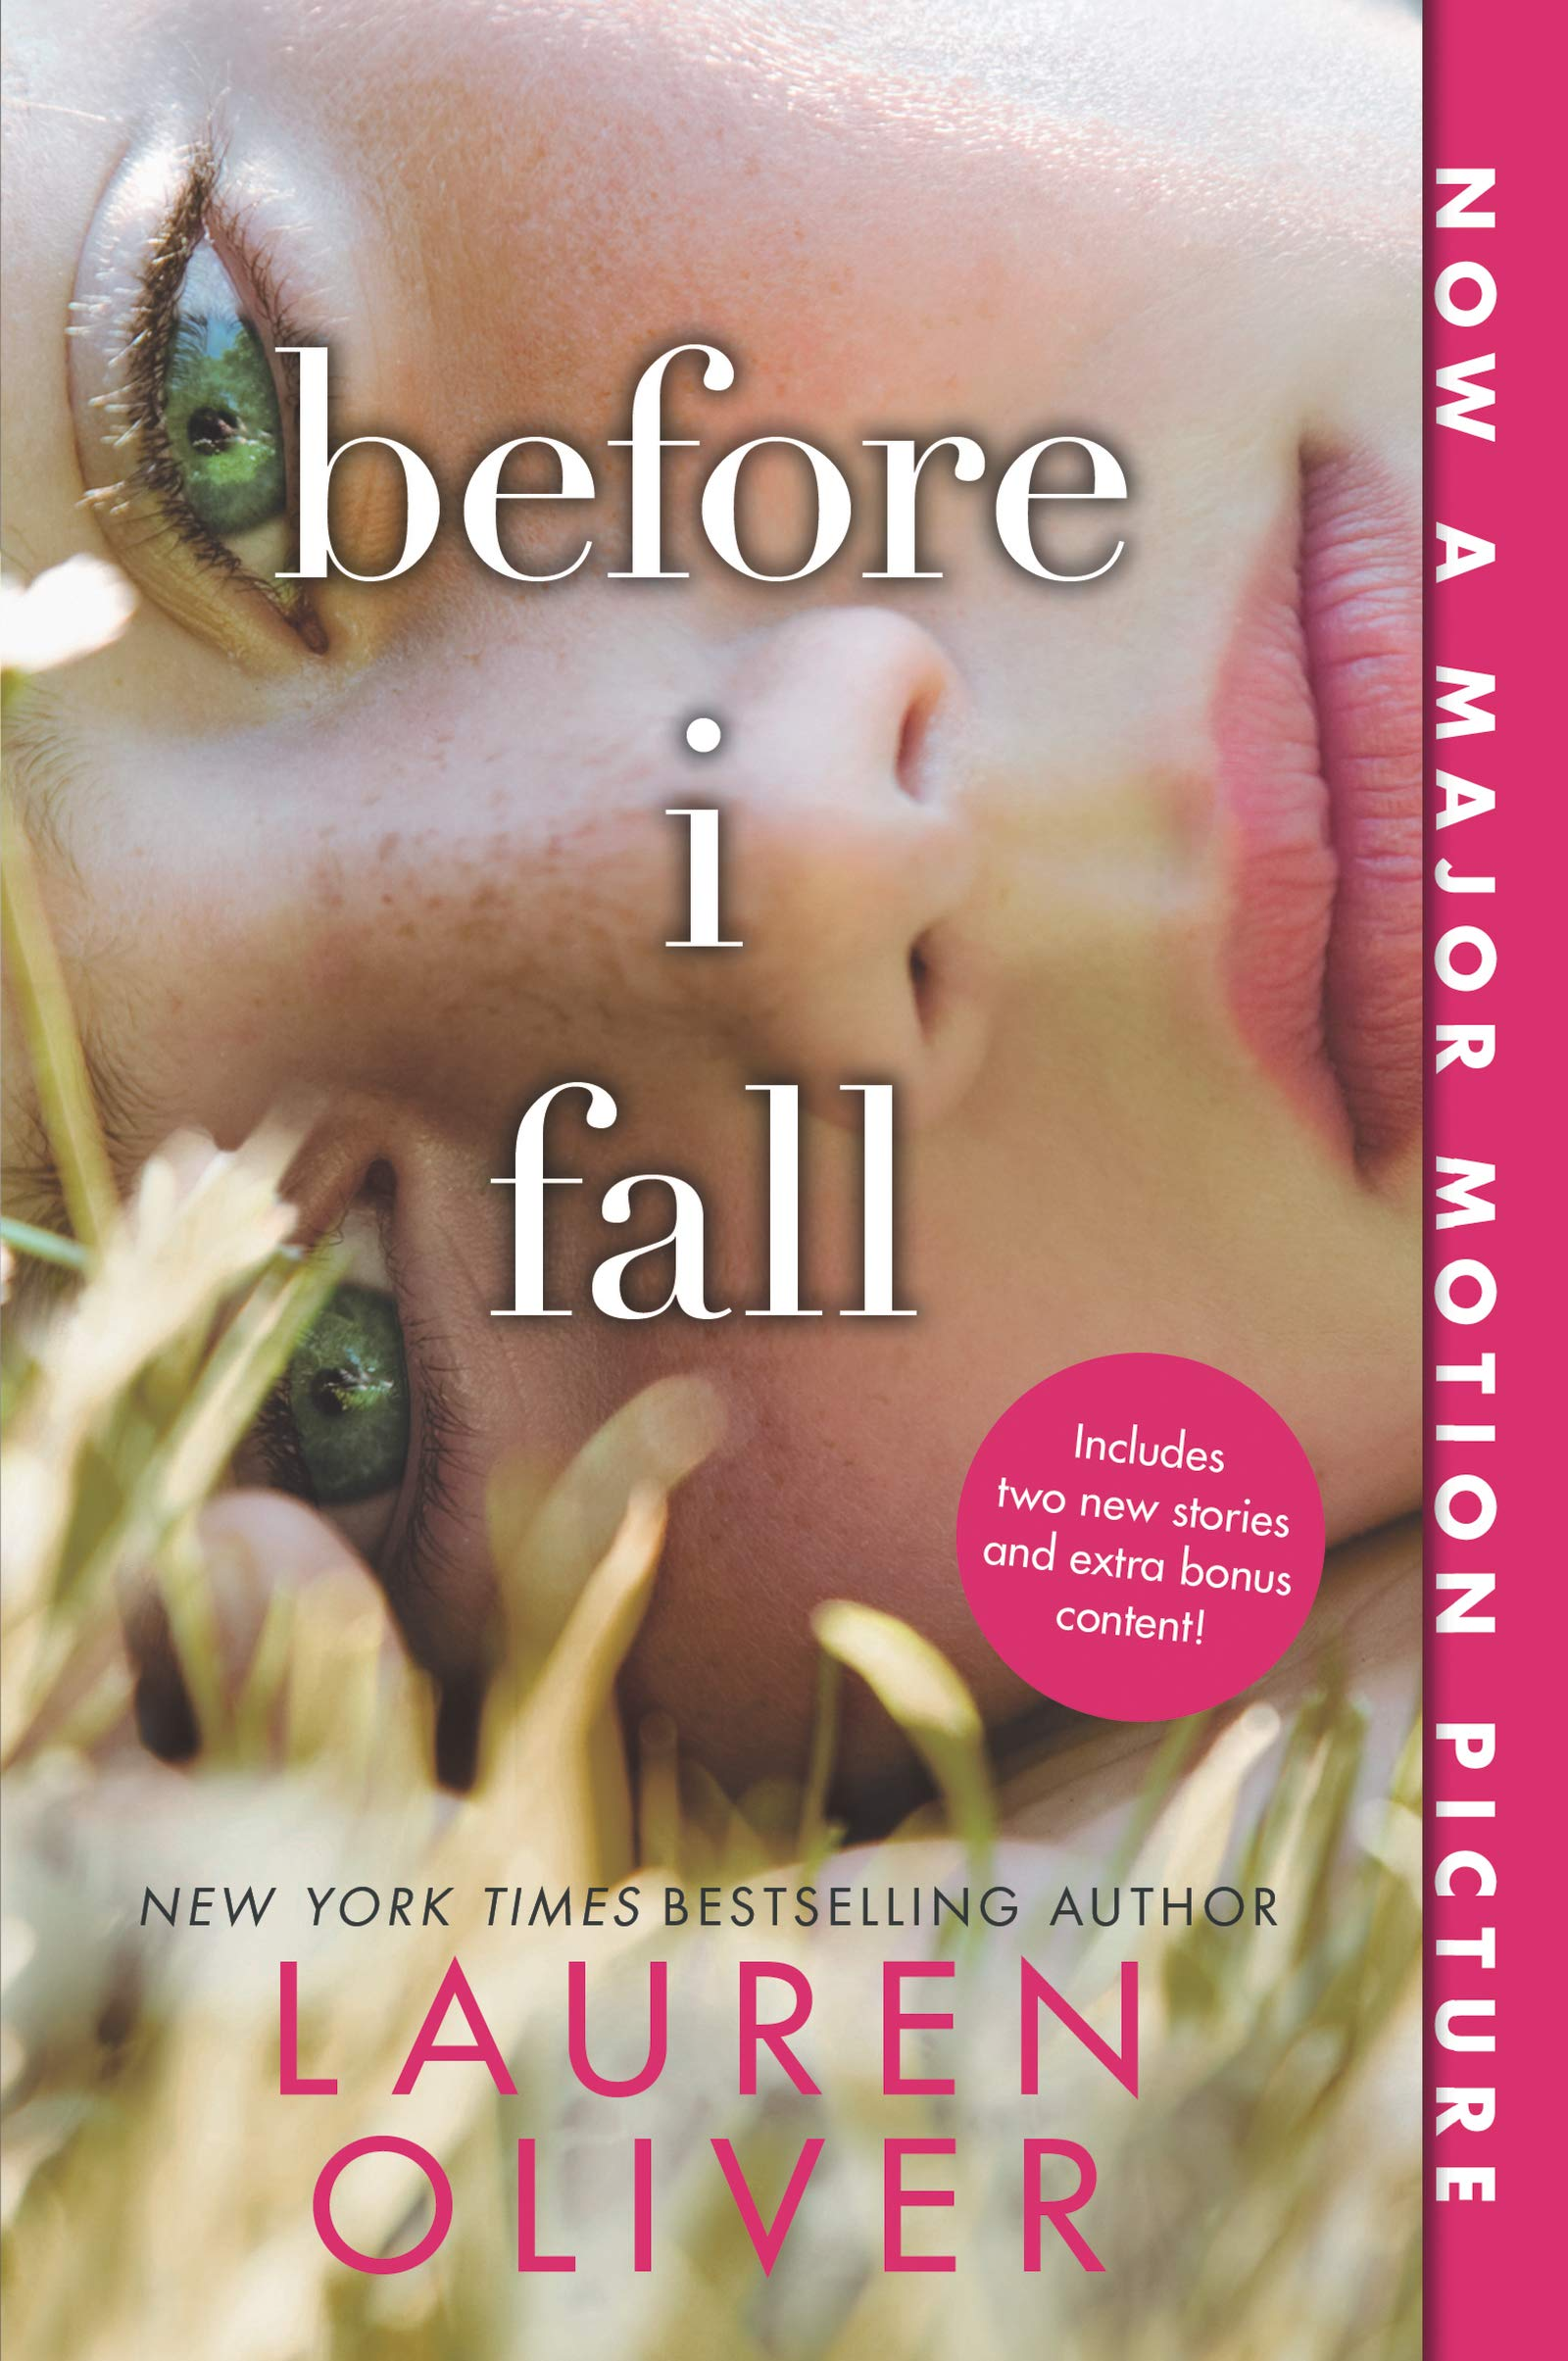 Amazon.com: Before I Fall (9780061726811): Oliver, Lauren: Books